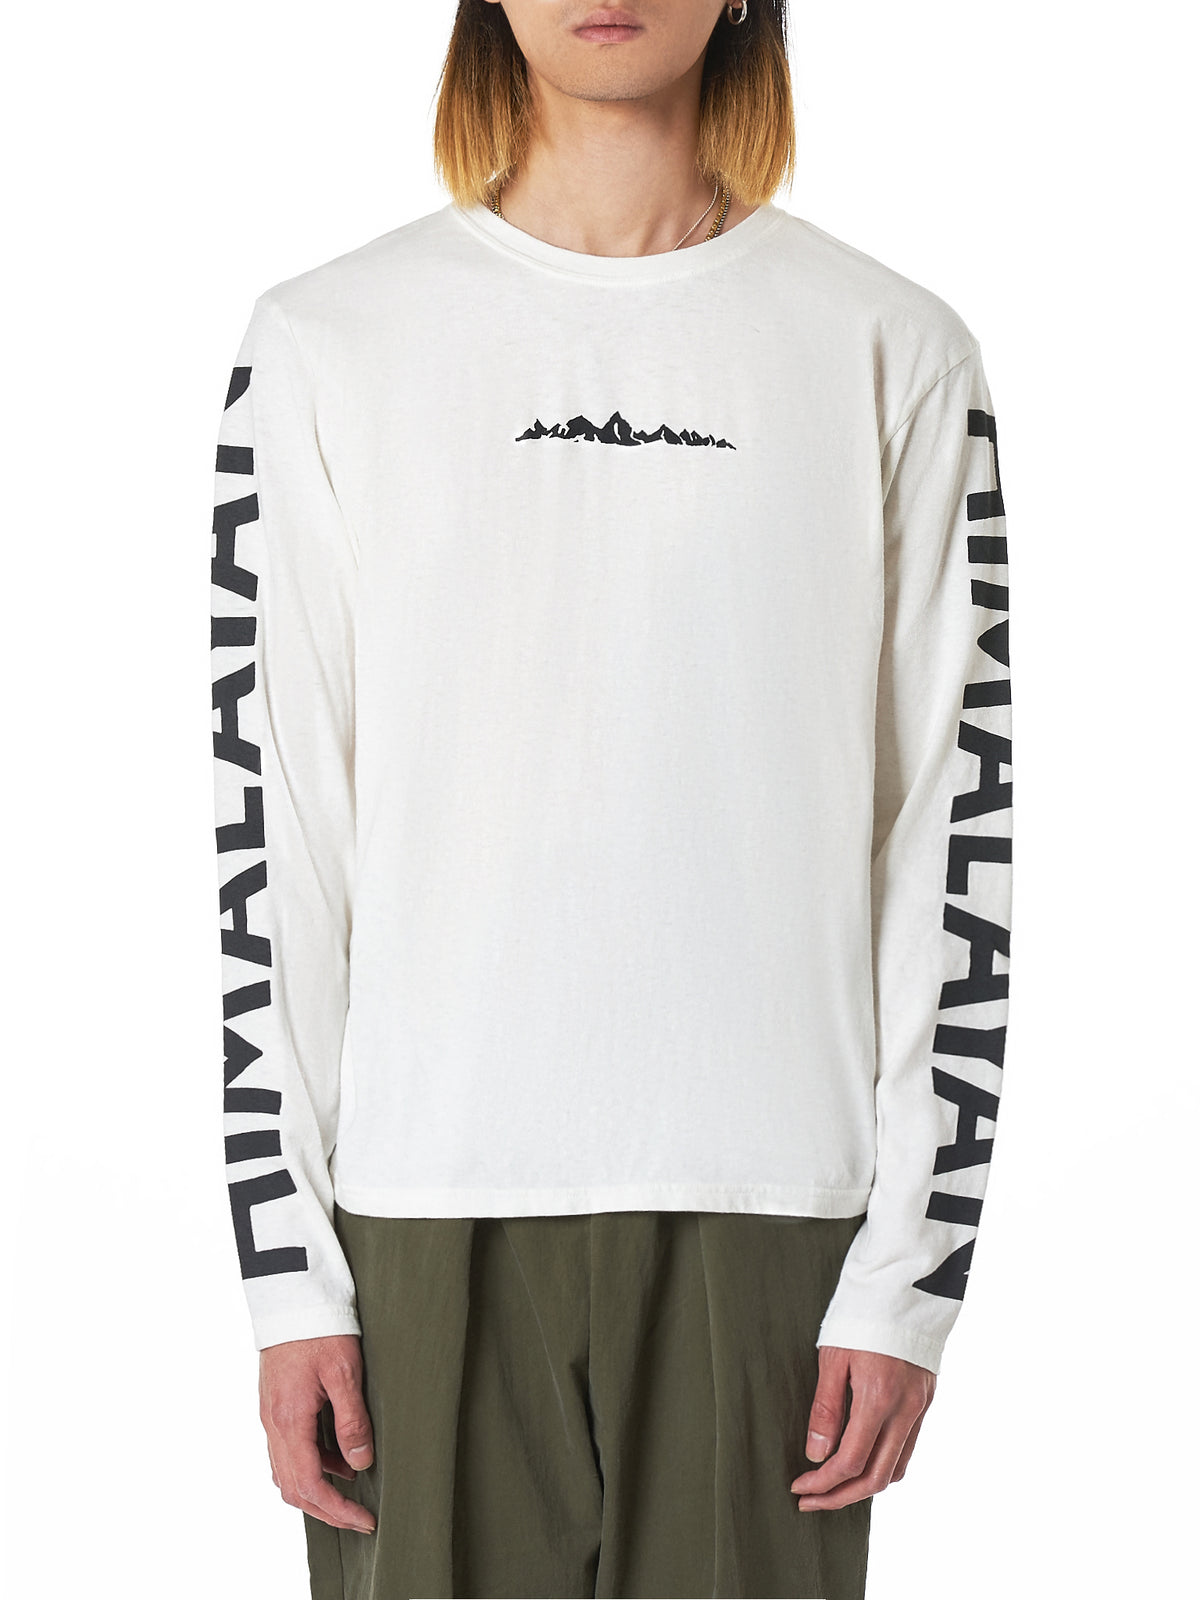 Kapital Long-Sleeve Tee Shirt - Hlorenzo Front